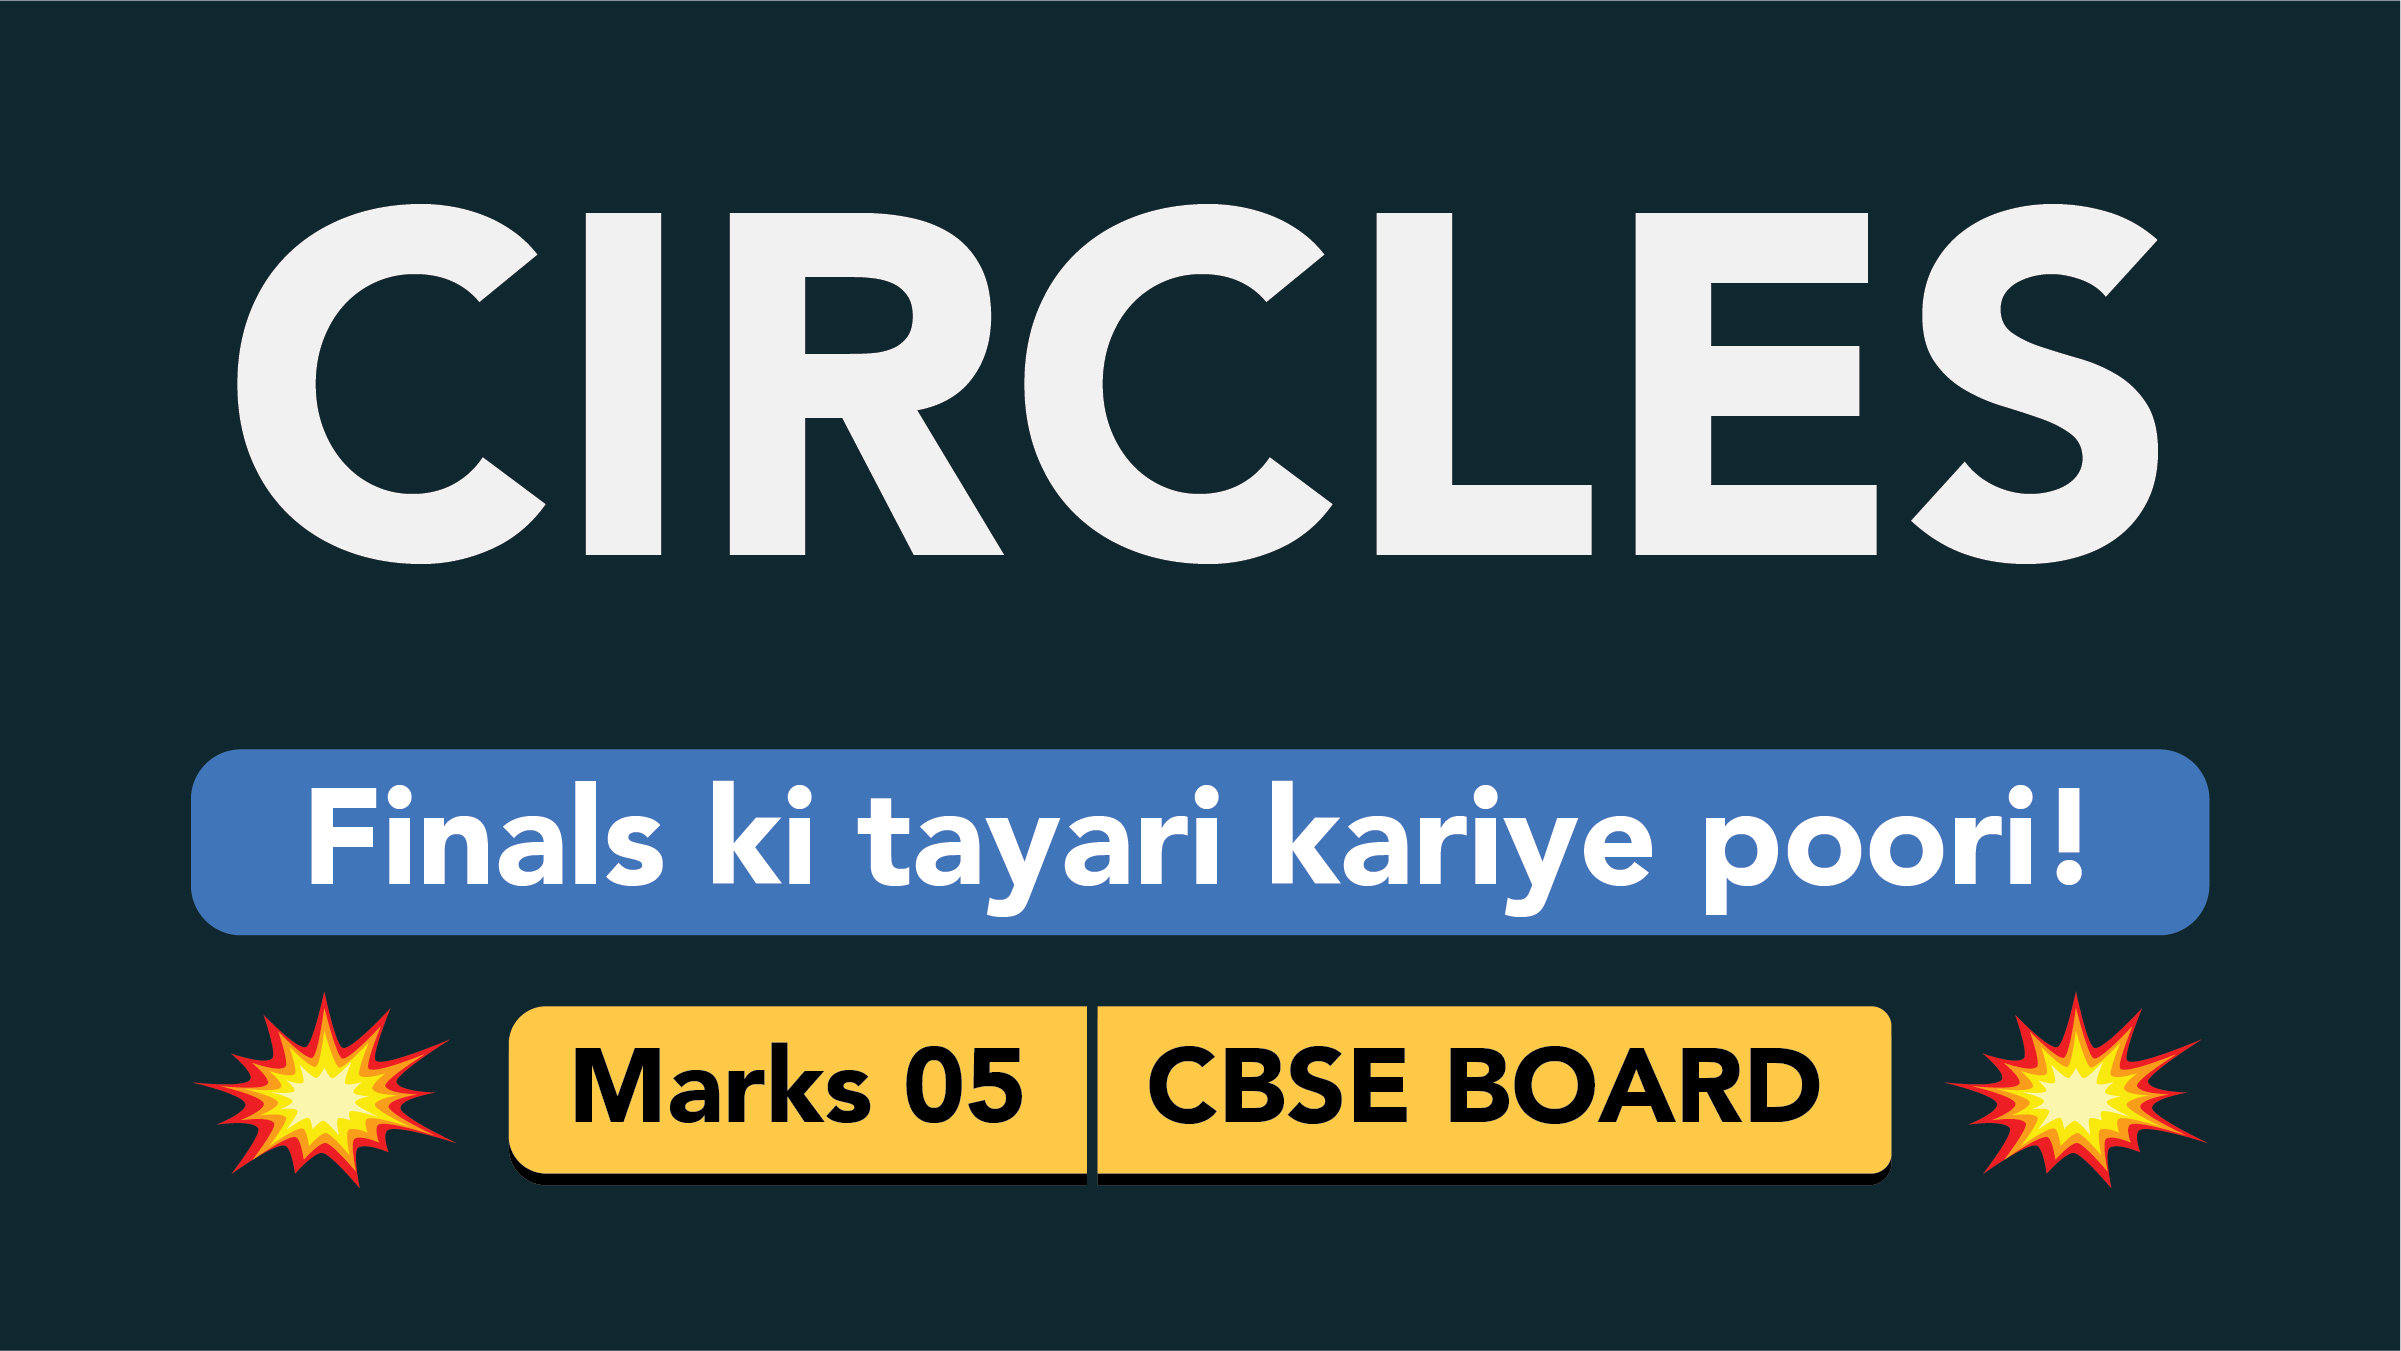 CBSE Board Class 9 CIRCLES || Weightage and Important Topics